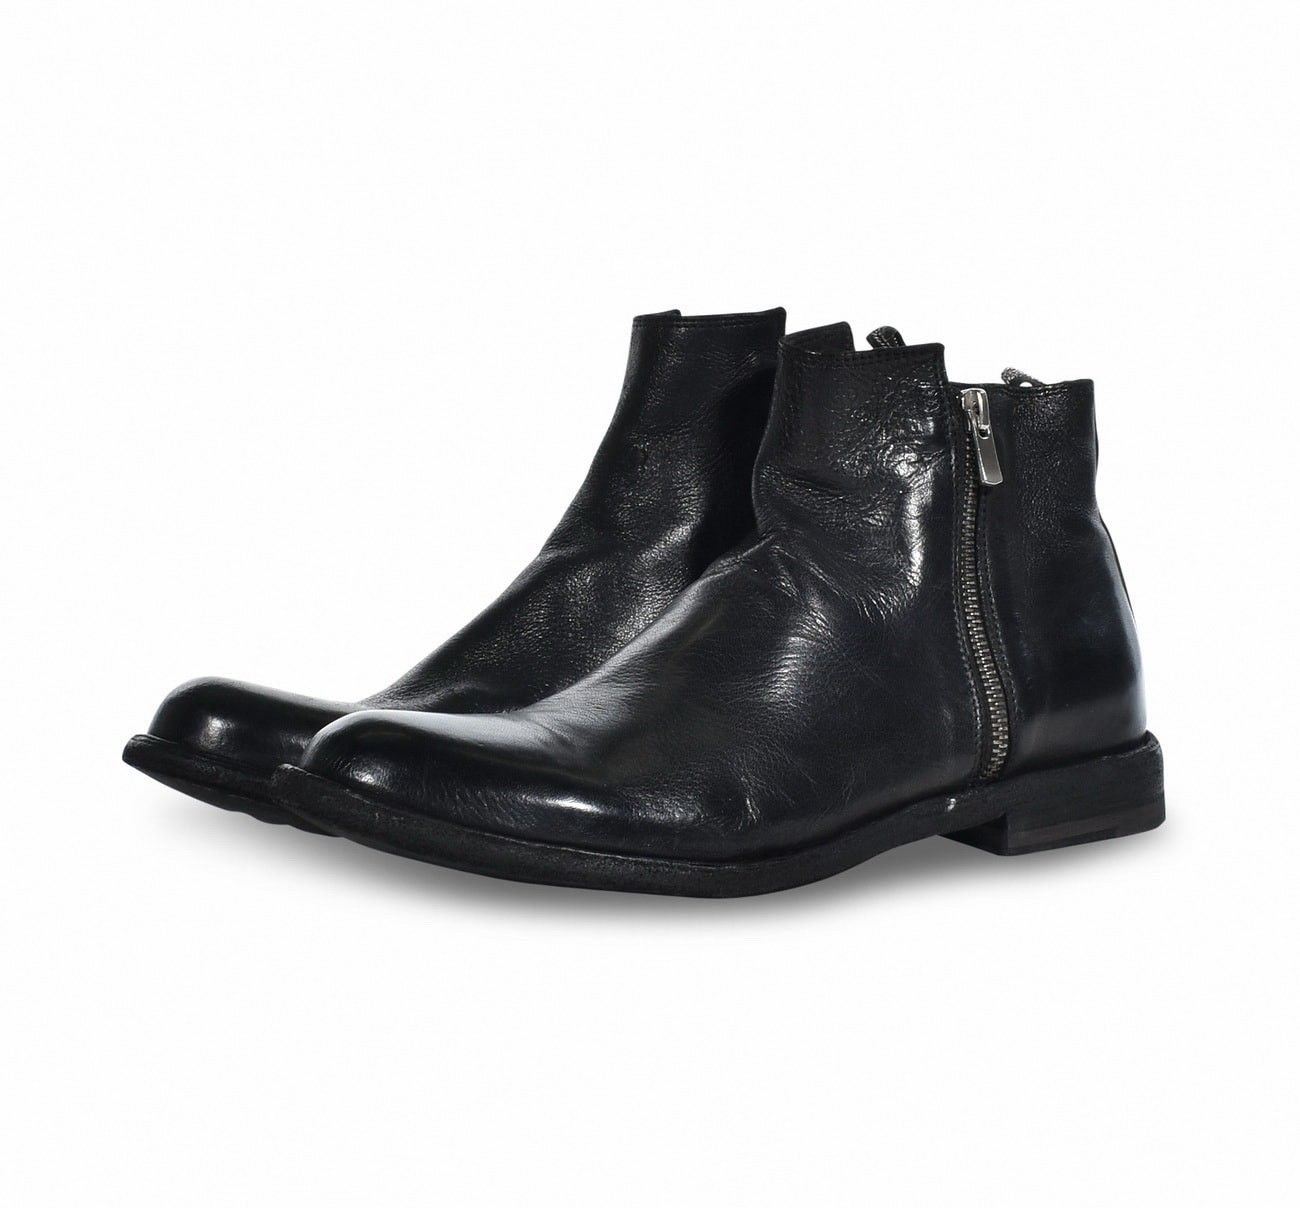 OFFICINE CREATIVE - Herren Stiefelette - Cervo Scaletto  - Nero